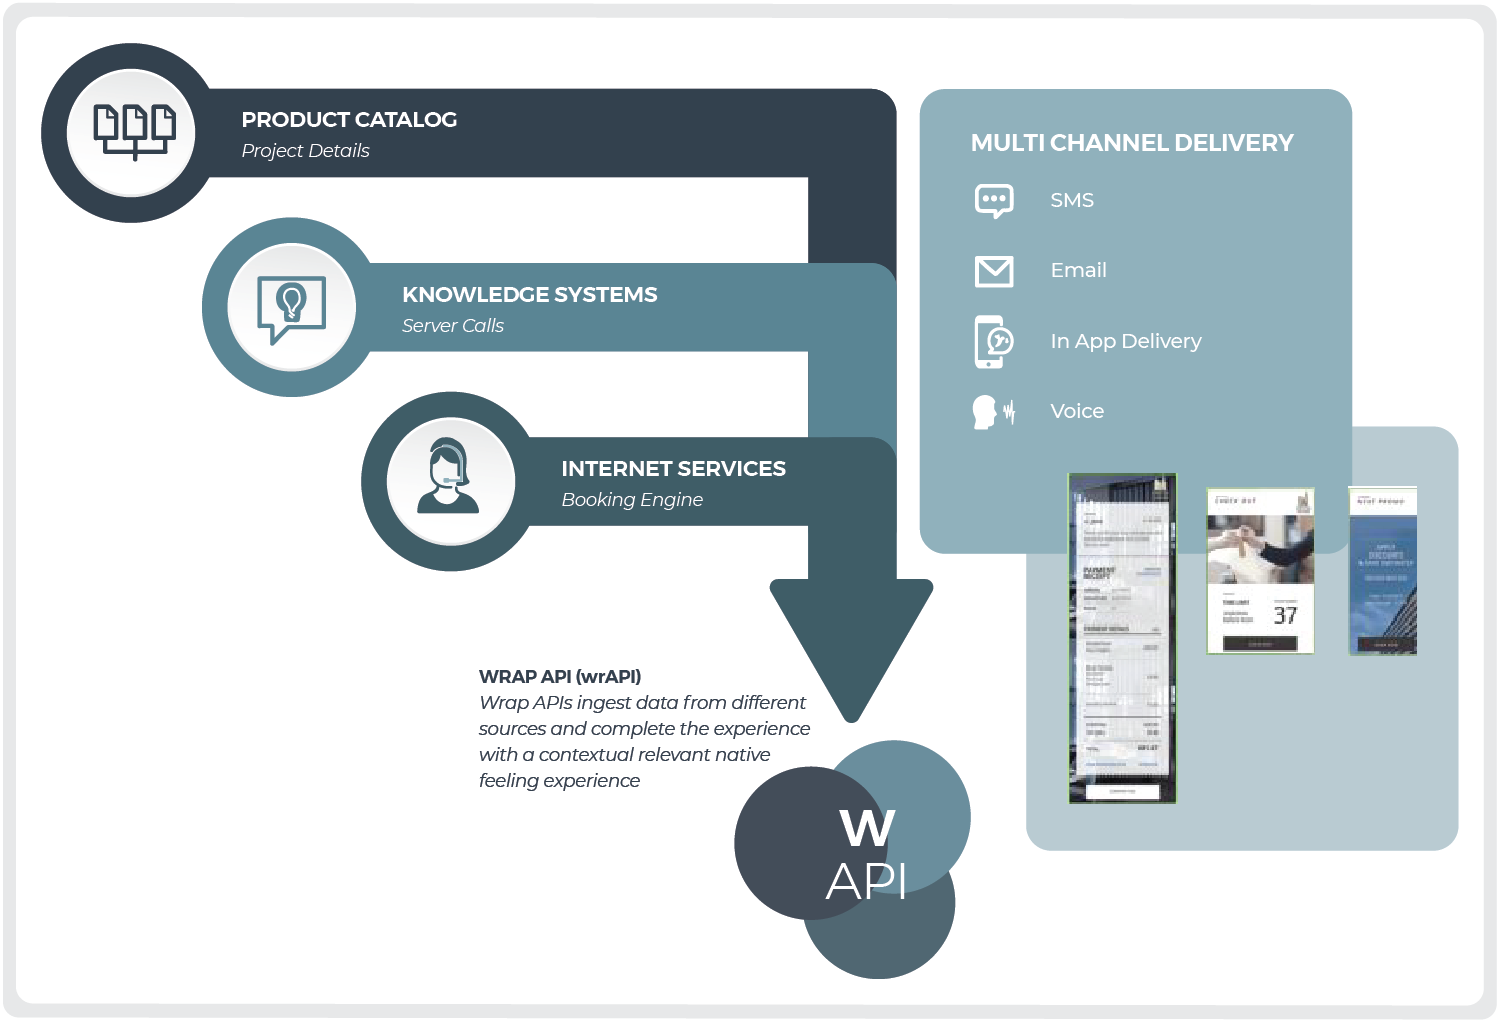 API can pull in data or content from 3rd party sources & assemble wraps in milliseconds